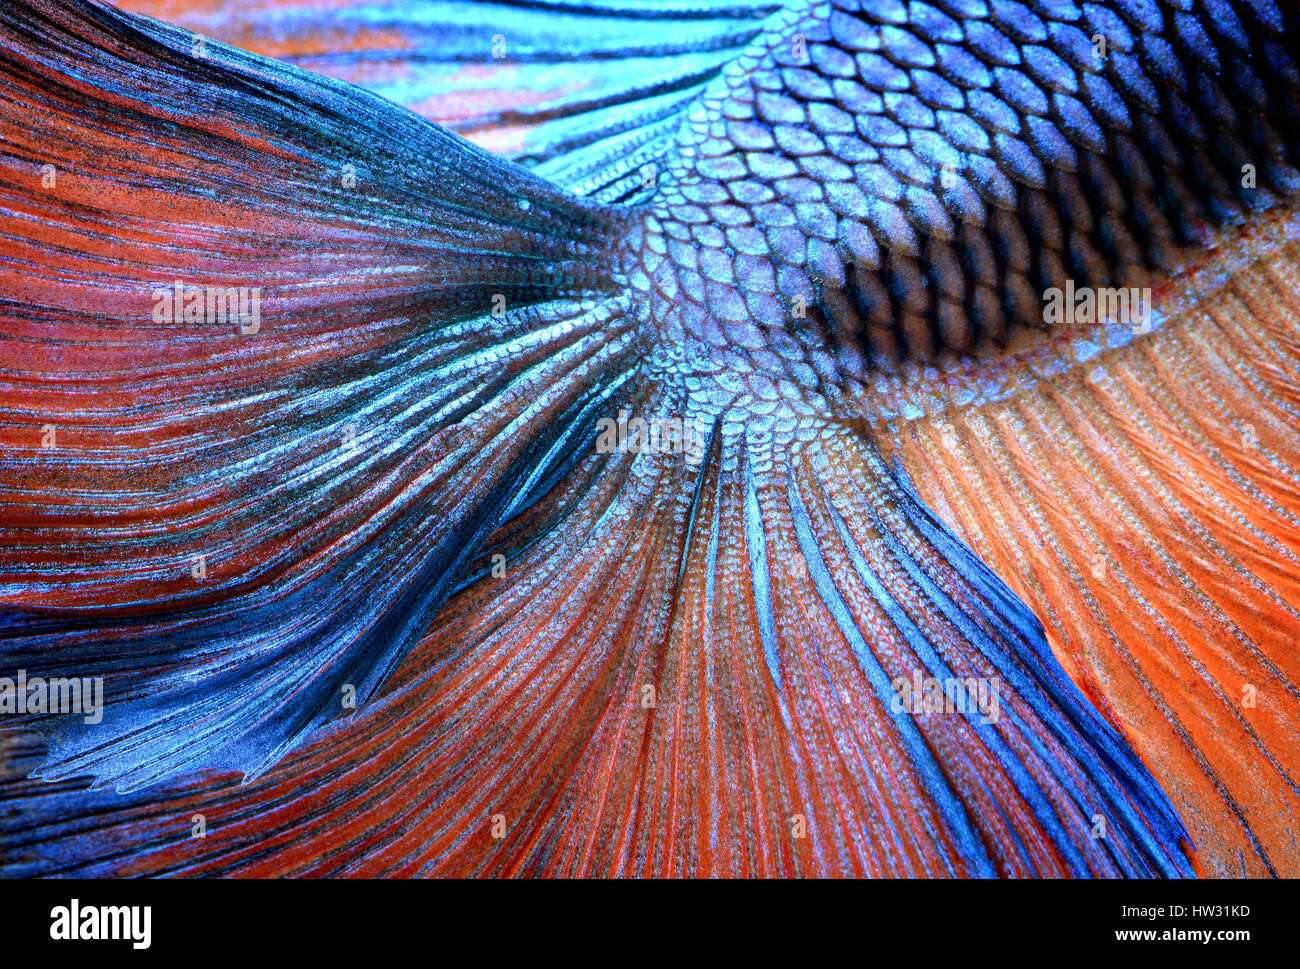 Betta fish in freedom action and show the detail of beautiful fins tail photo in flash lighting. - Stock Image